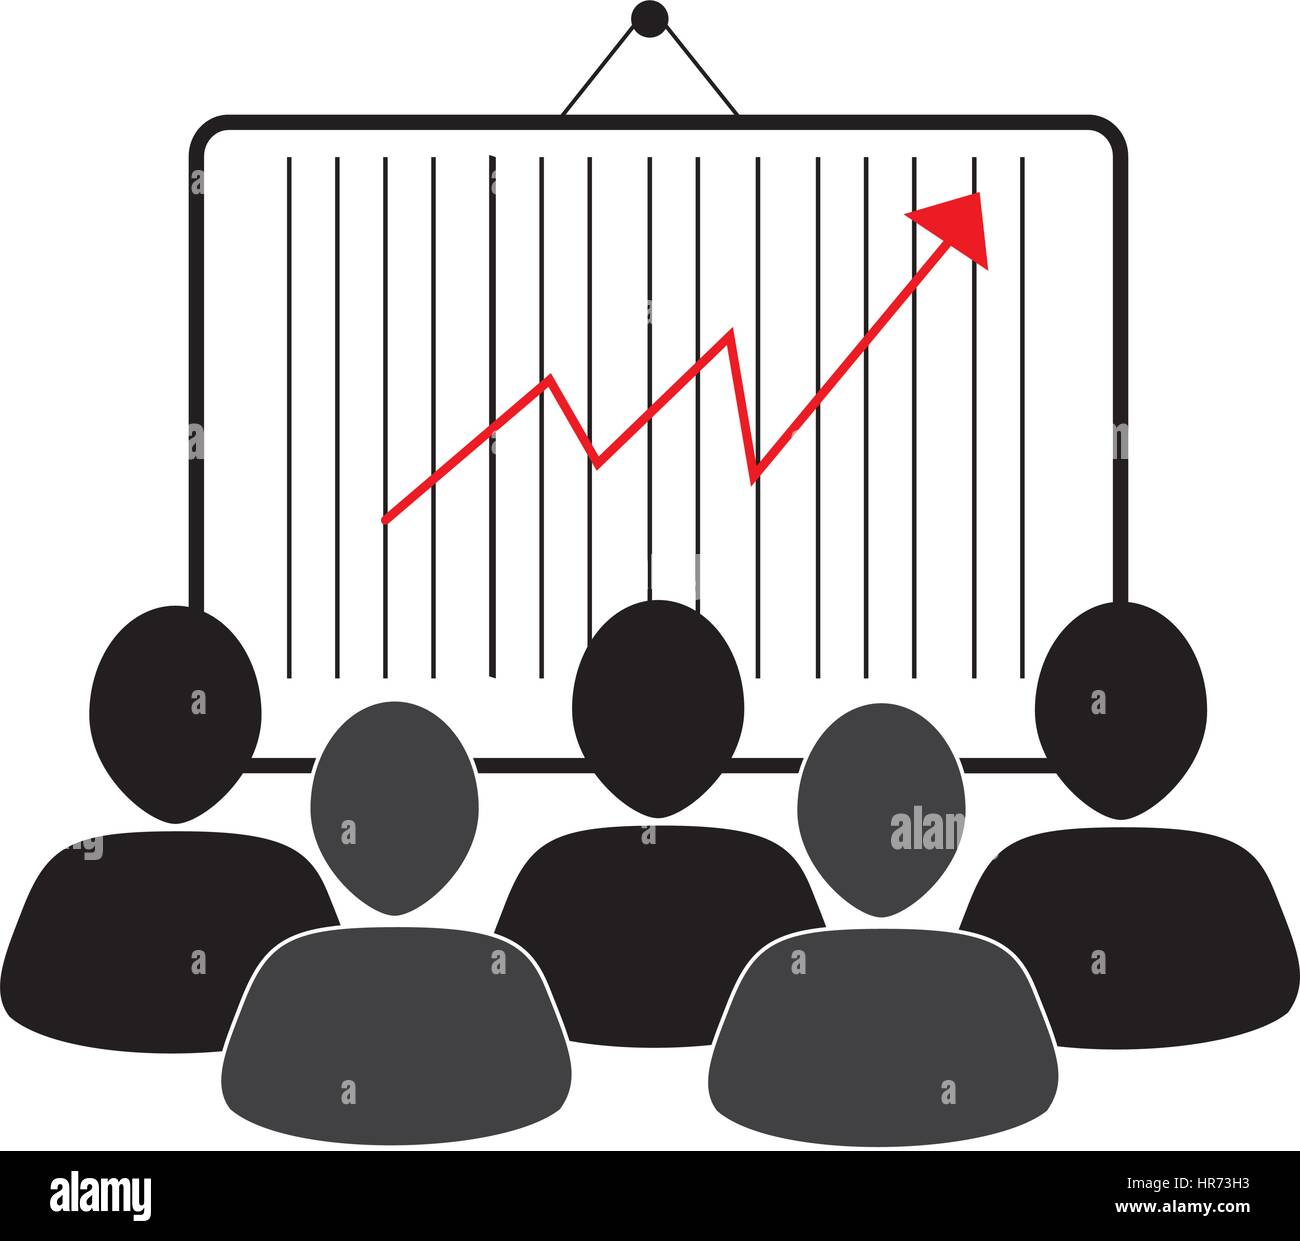 group of people and economic growth indicator table - Stock Image